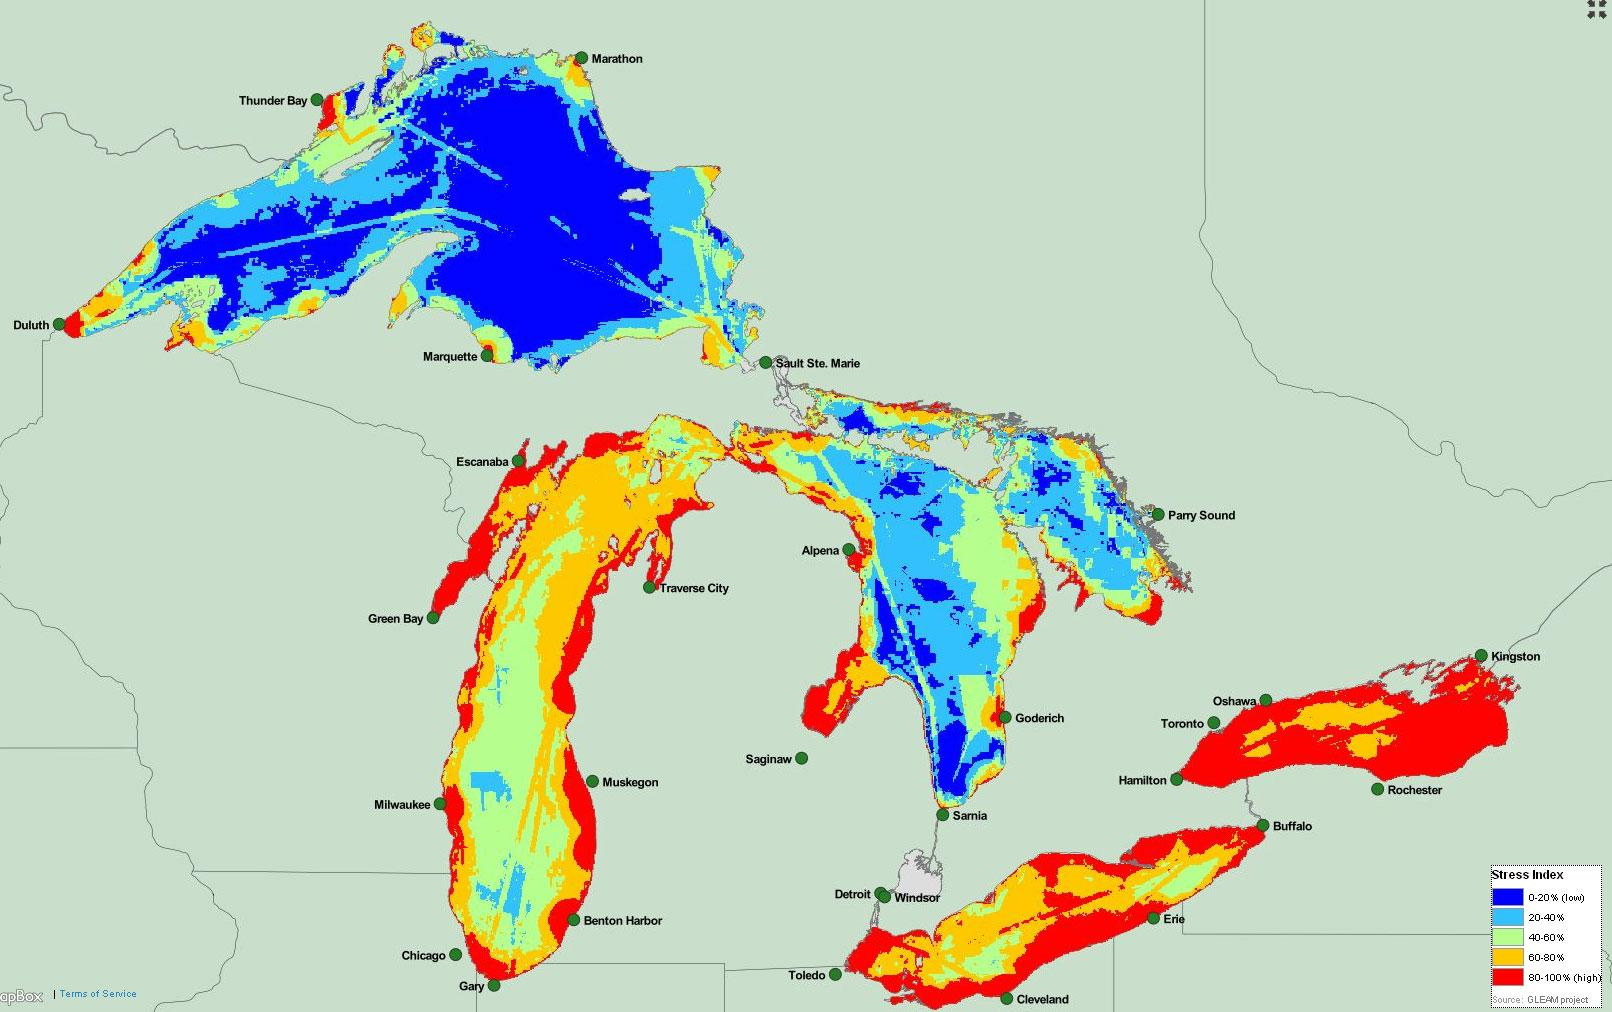 Researchers map 34 threats to the Great Lakes | Michigan Radio